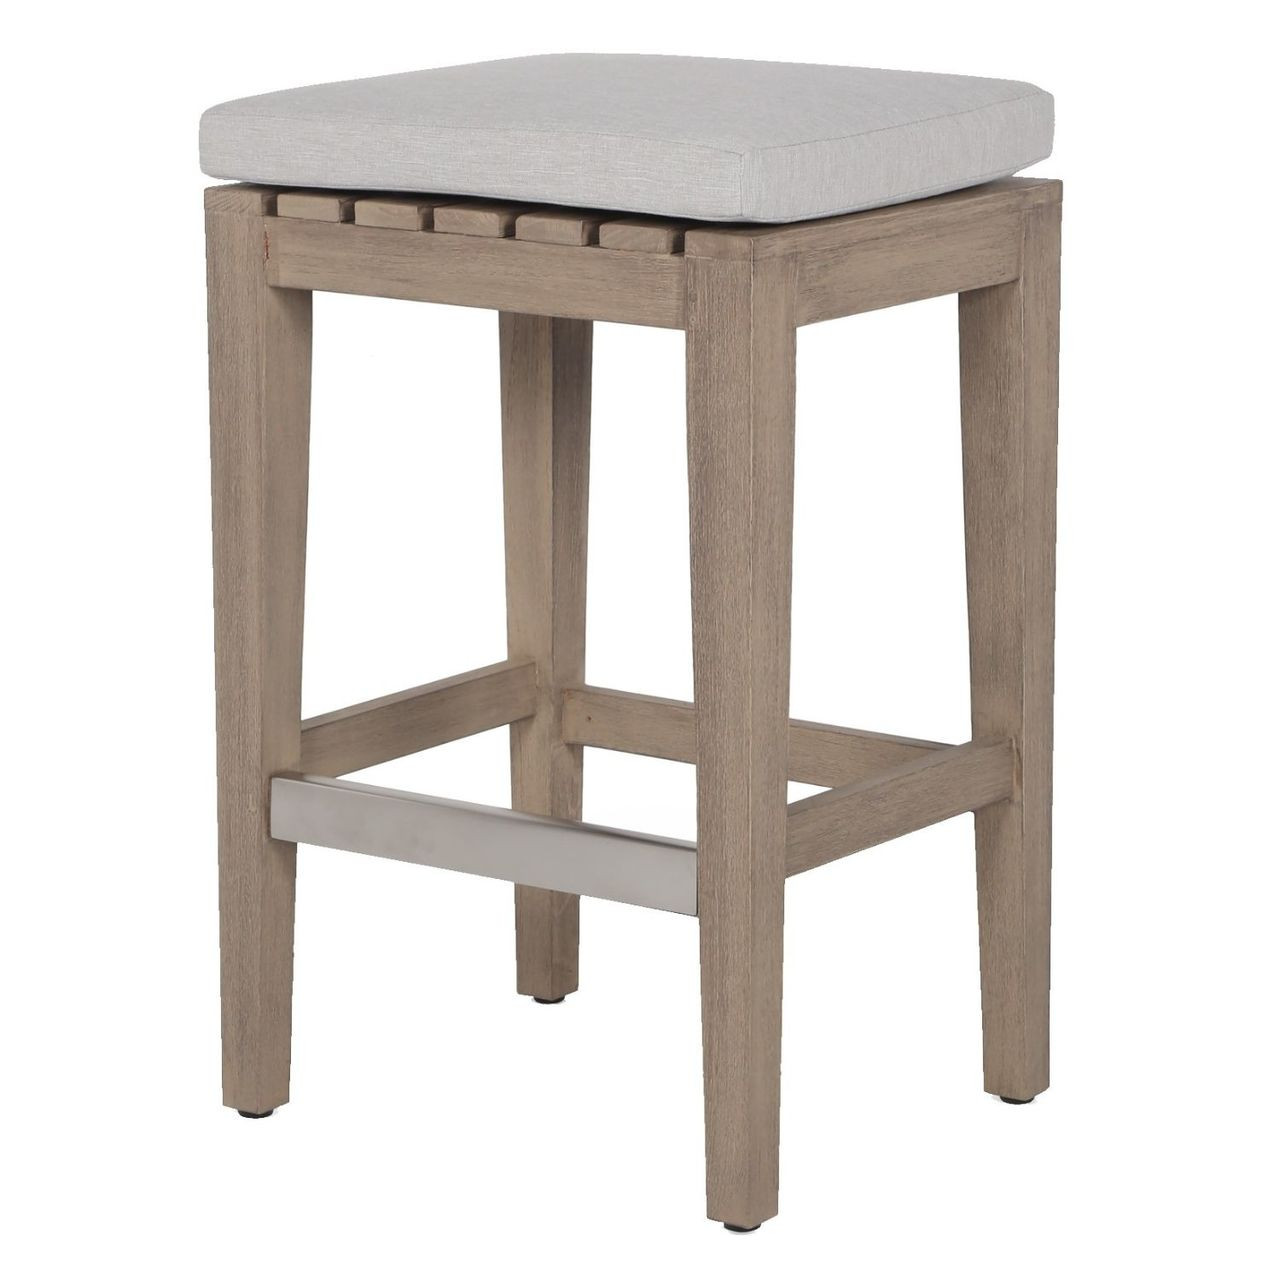 Super Dale Natural Teak Outdoor Counter Stool Bralicious Painted Fabric Chair Ideas Braliciousco